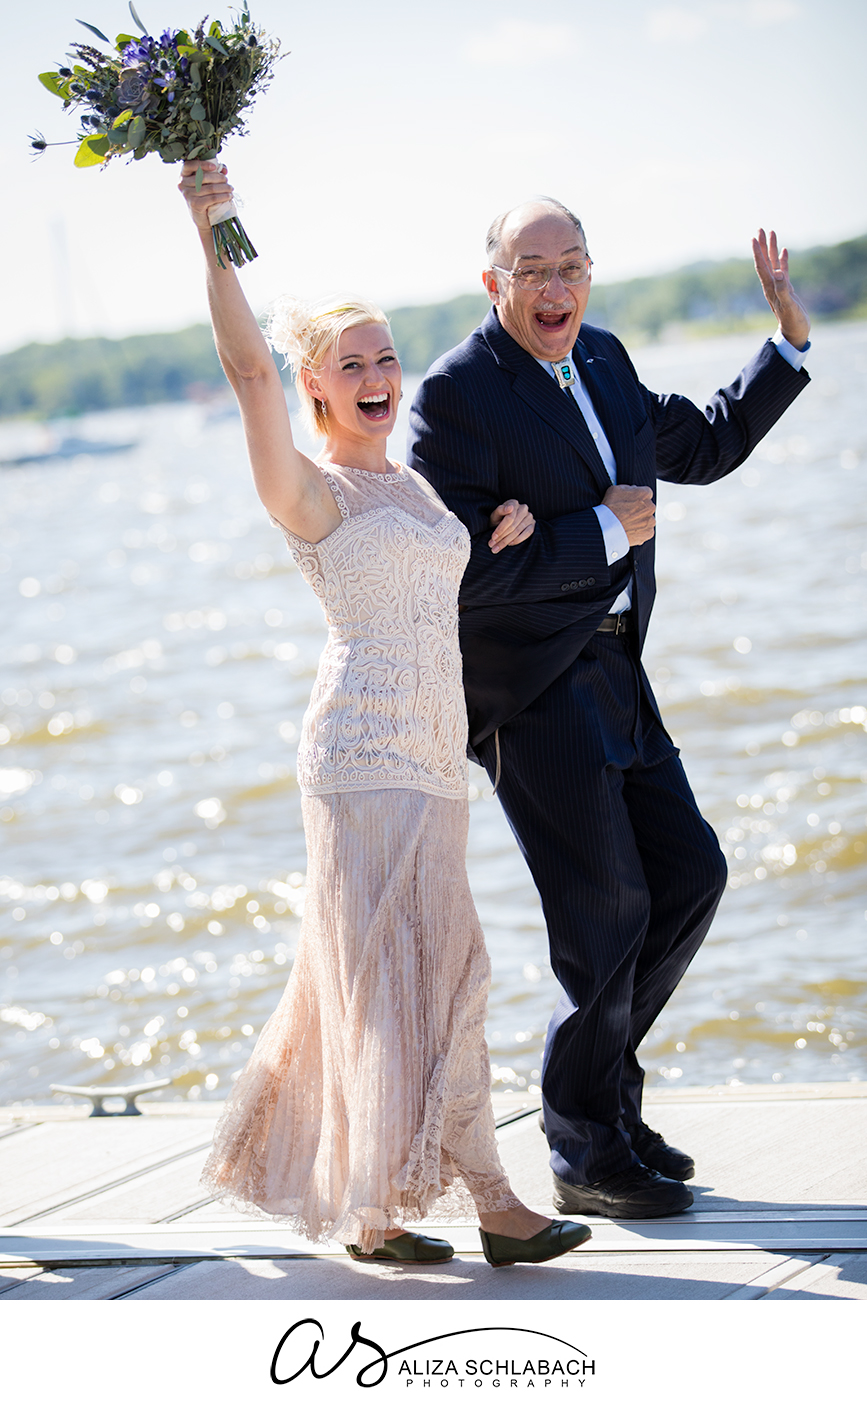 Photo of a bride and her father walking down a boat dock